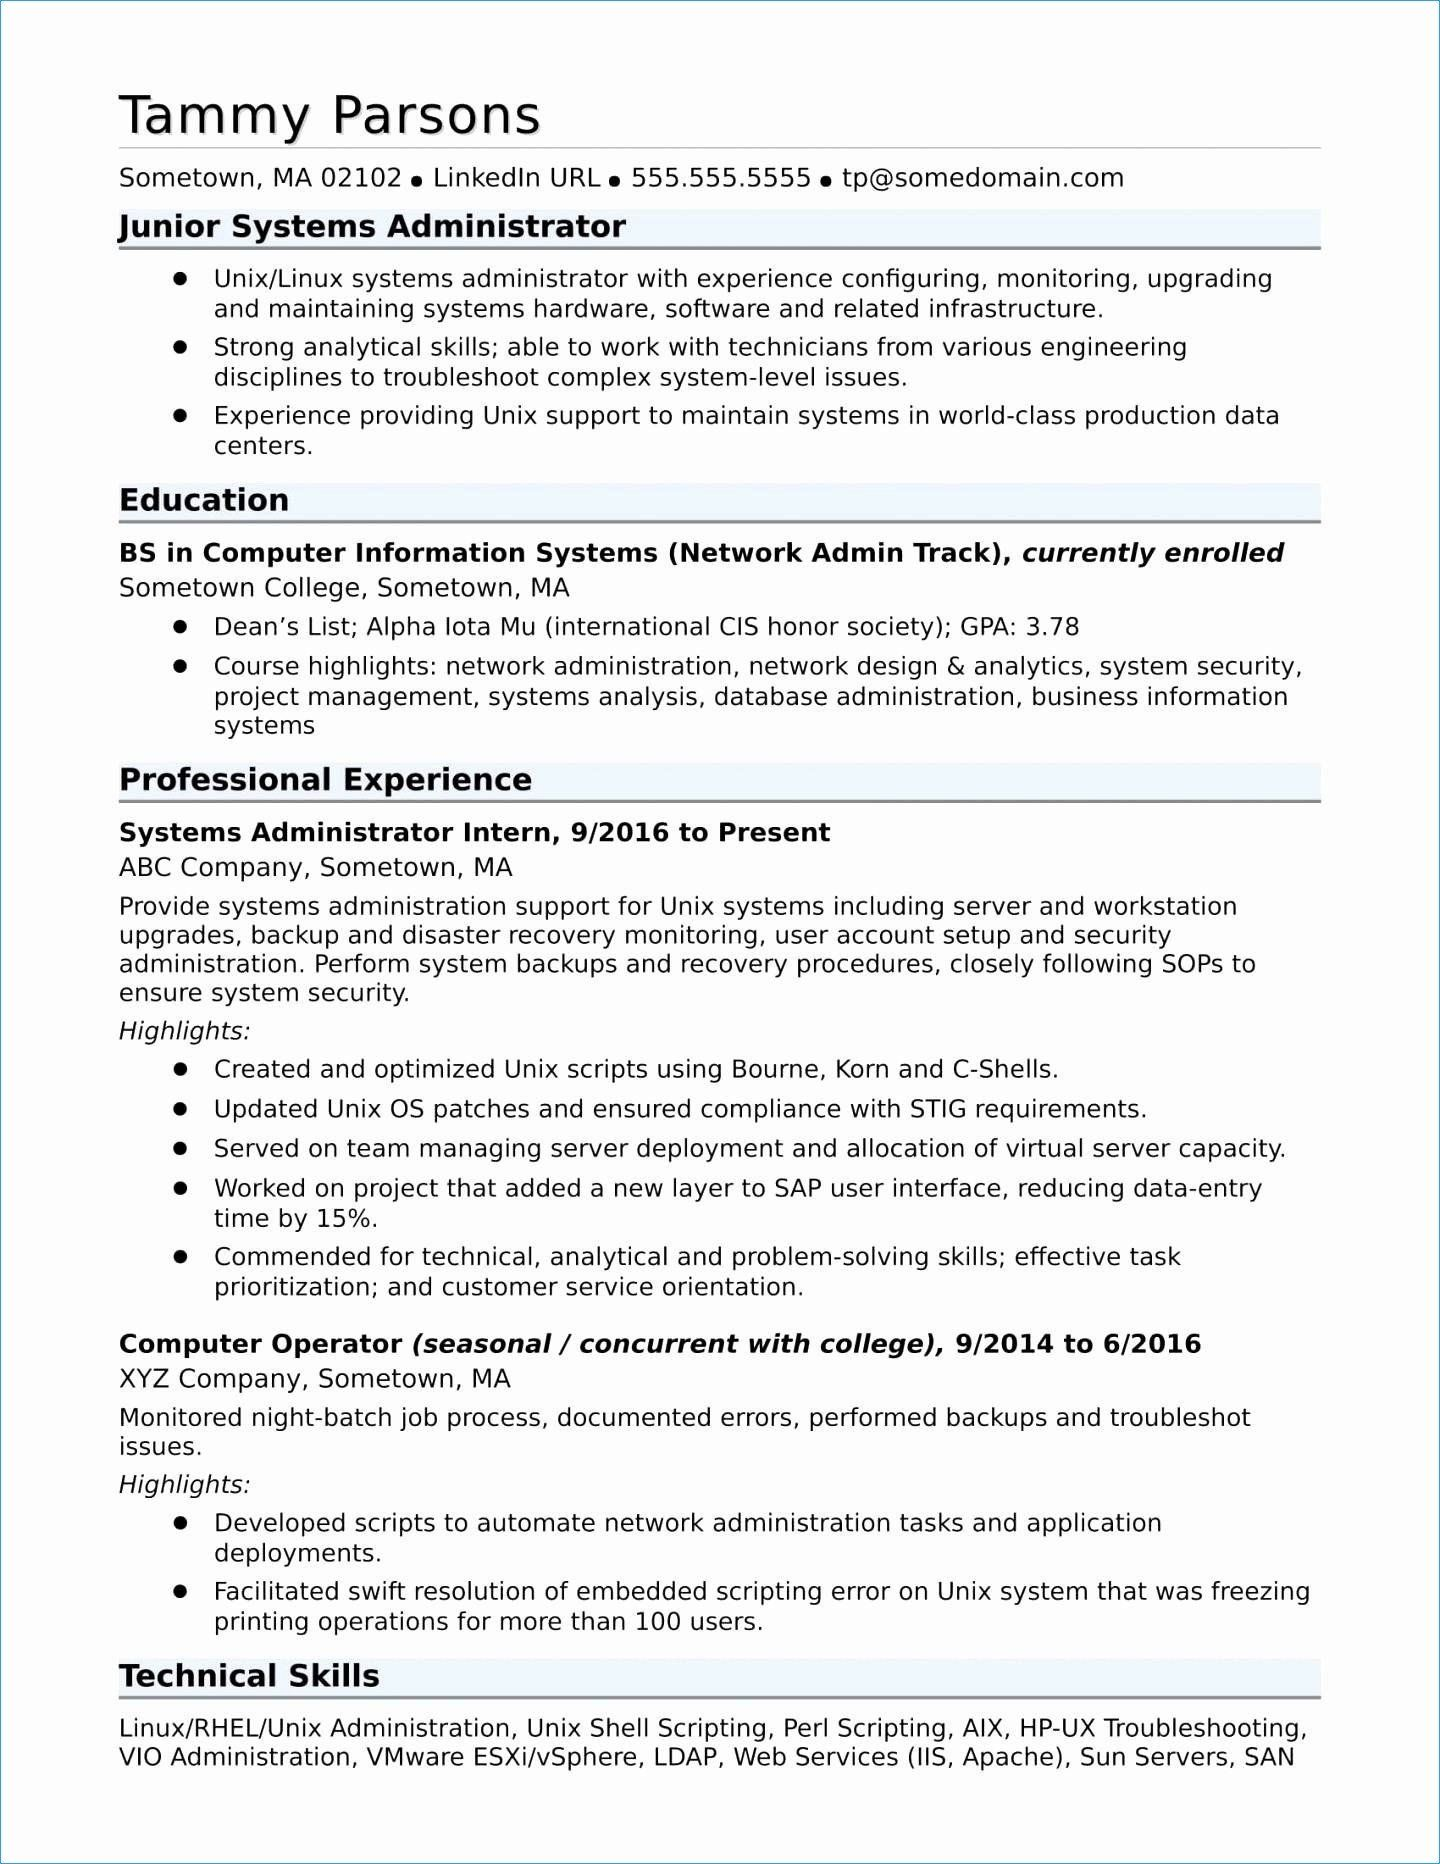 Adding A Resume to Linkedin Awesome Unique How Do I Find